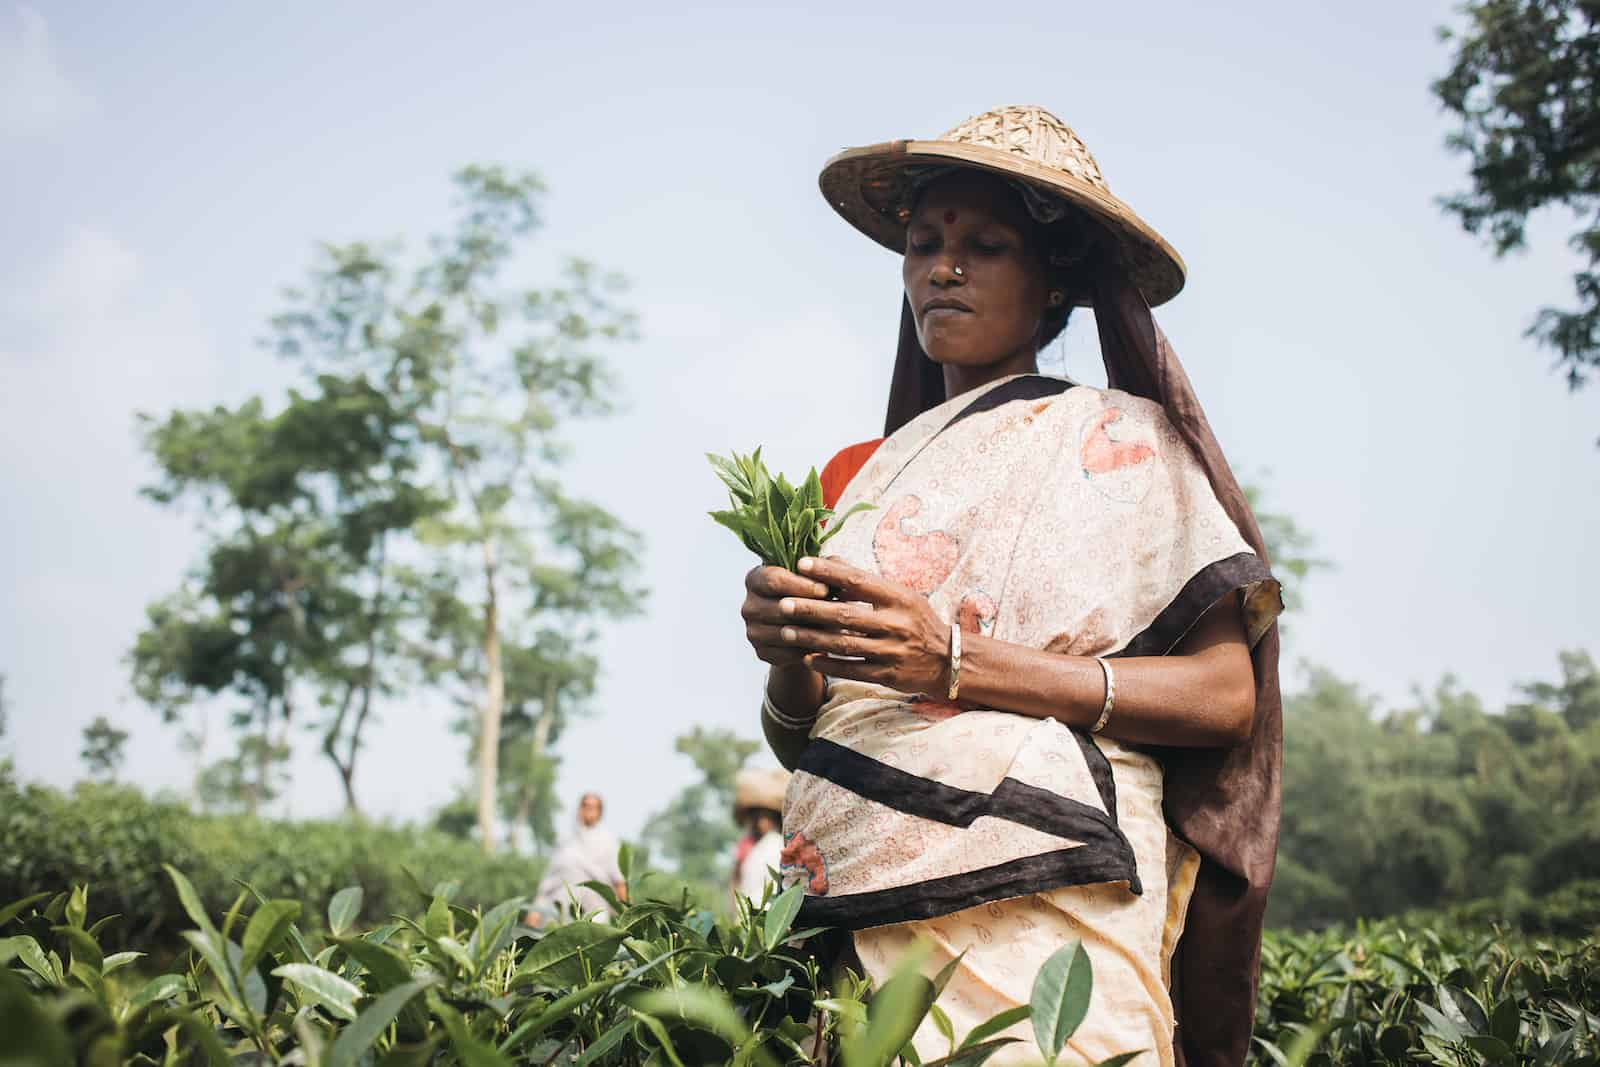 A woman stands in a field holding tea leaves in her hand, the most popular drink in the world. She wears a sari and a straw hat with a bag underneath to hold tea leaves. She stands in a large field.